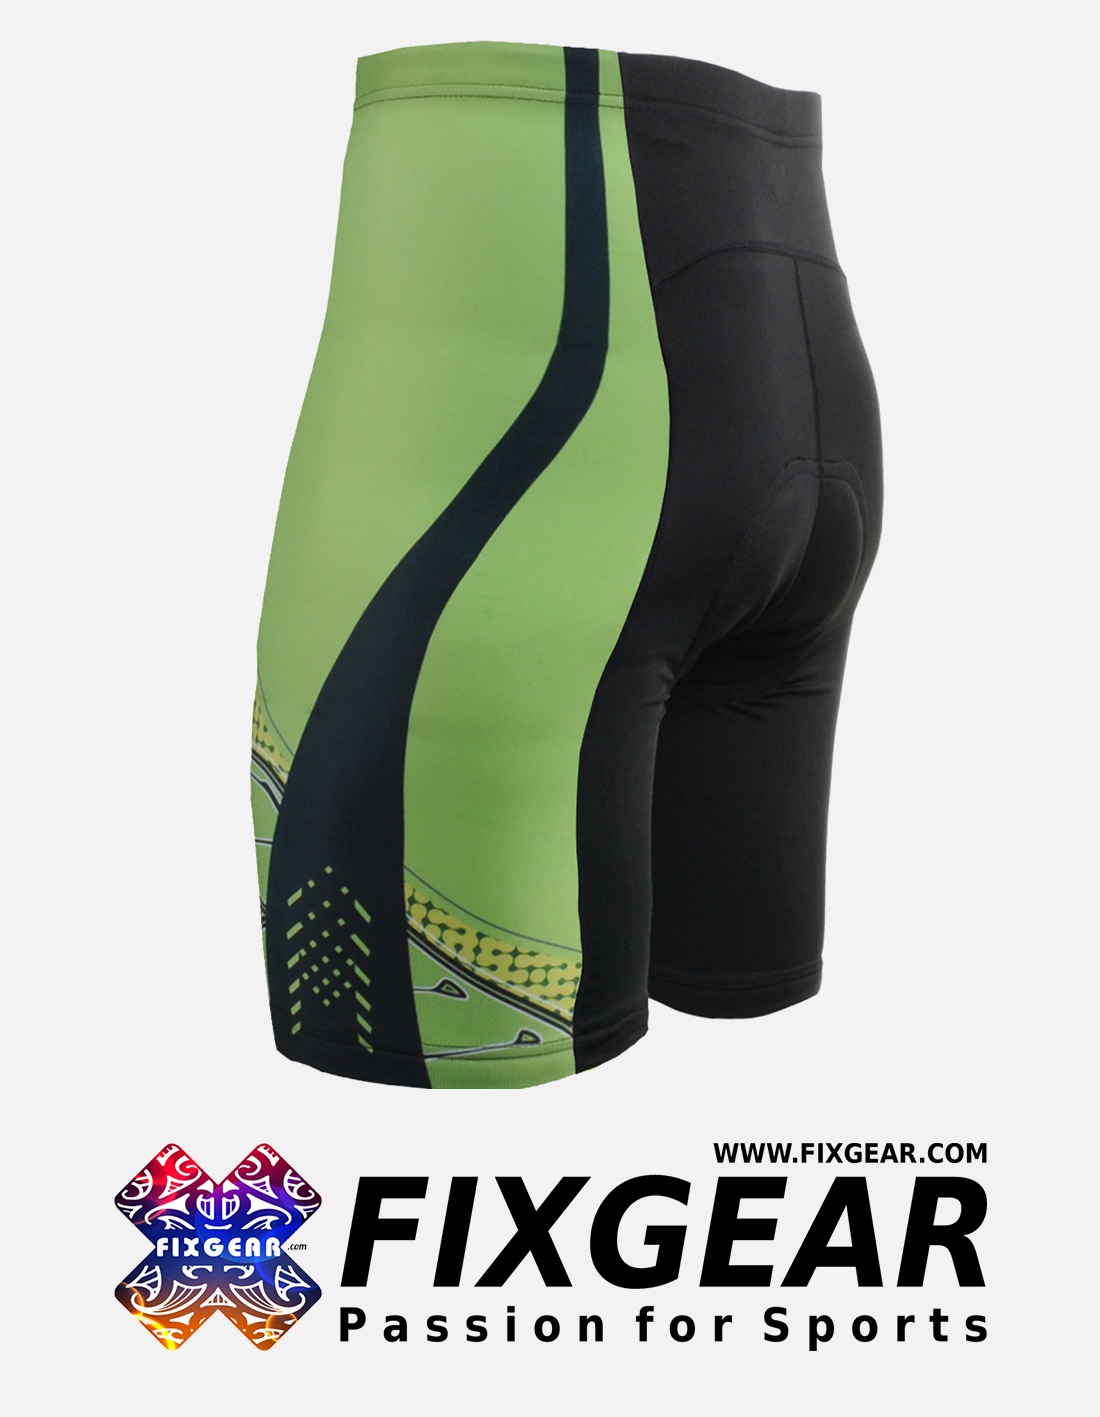 FIXGEAR ST-75 Men's Cycling Cycling Padded Shorts